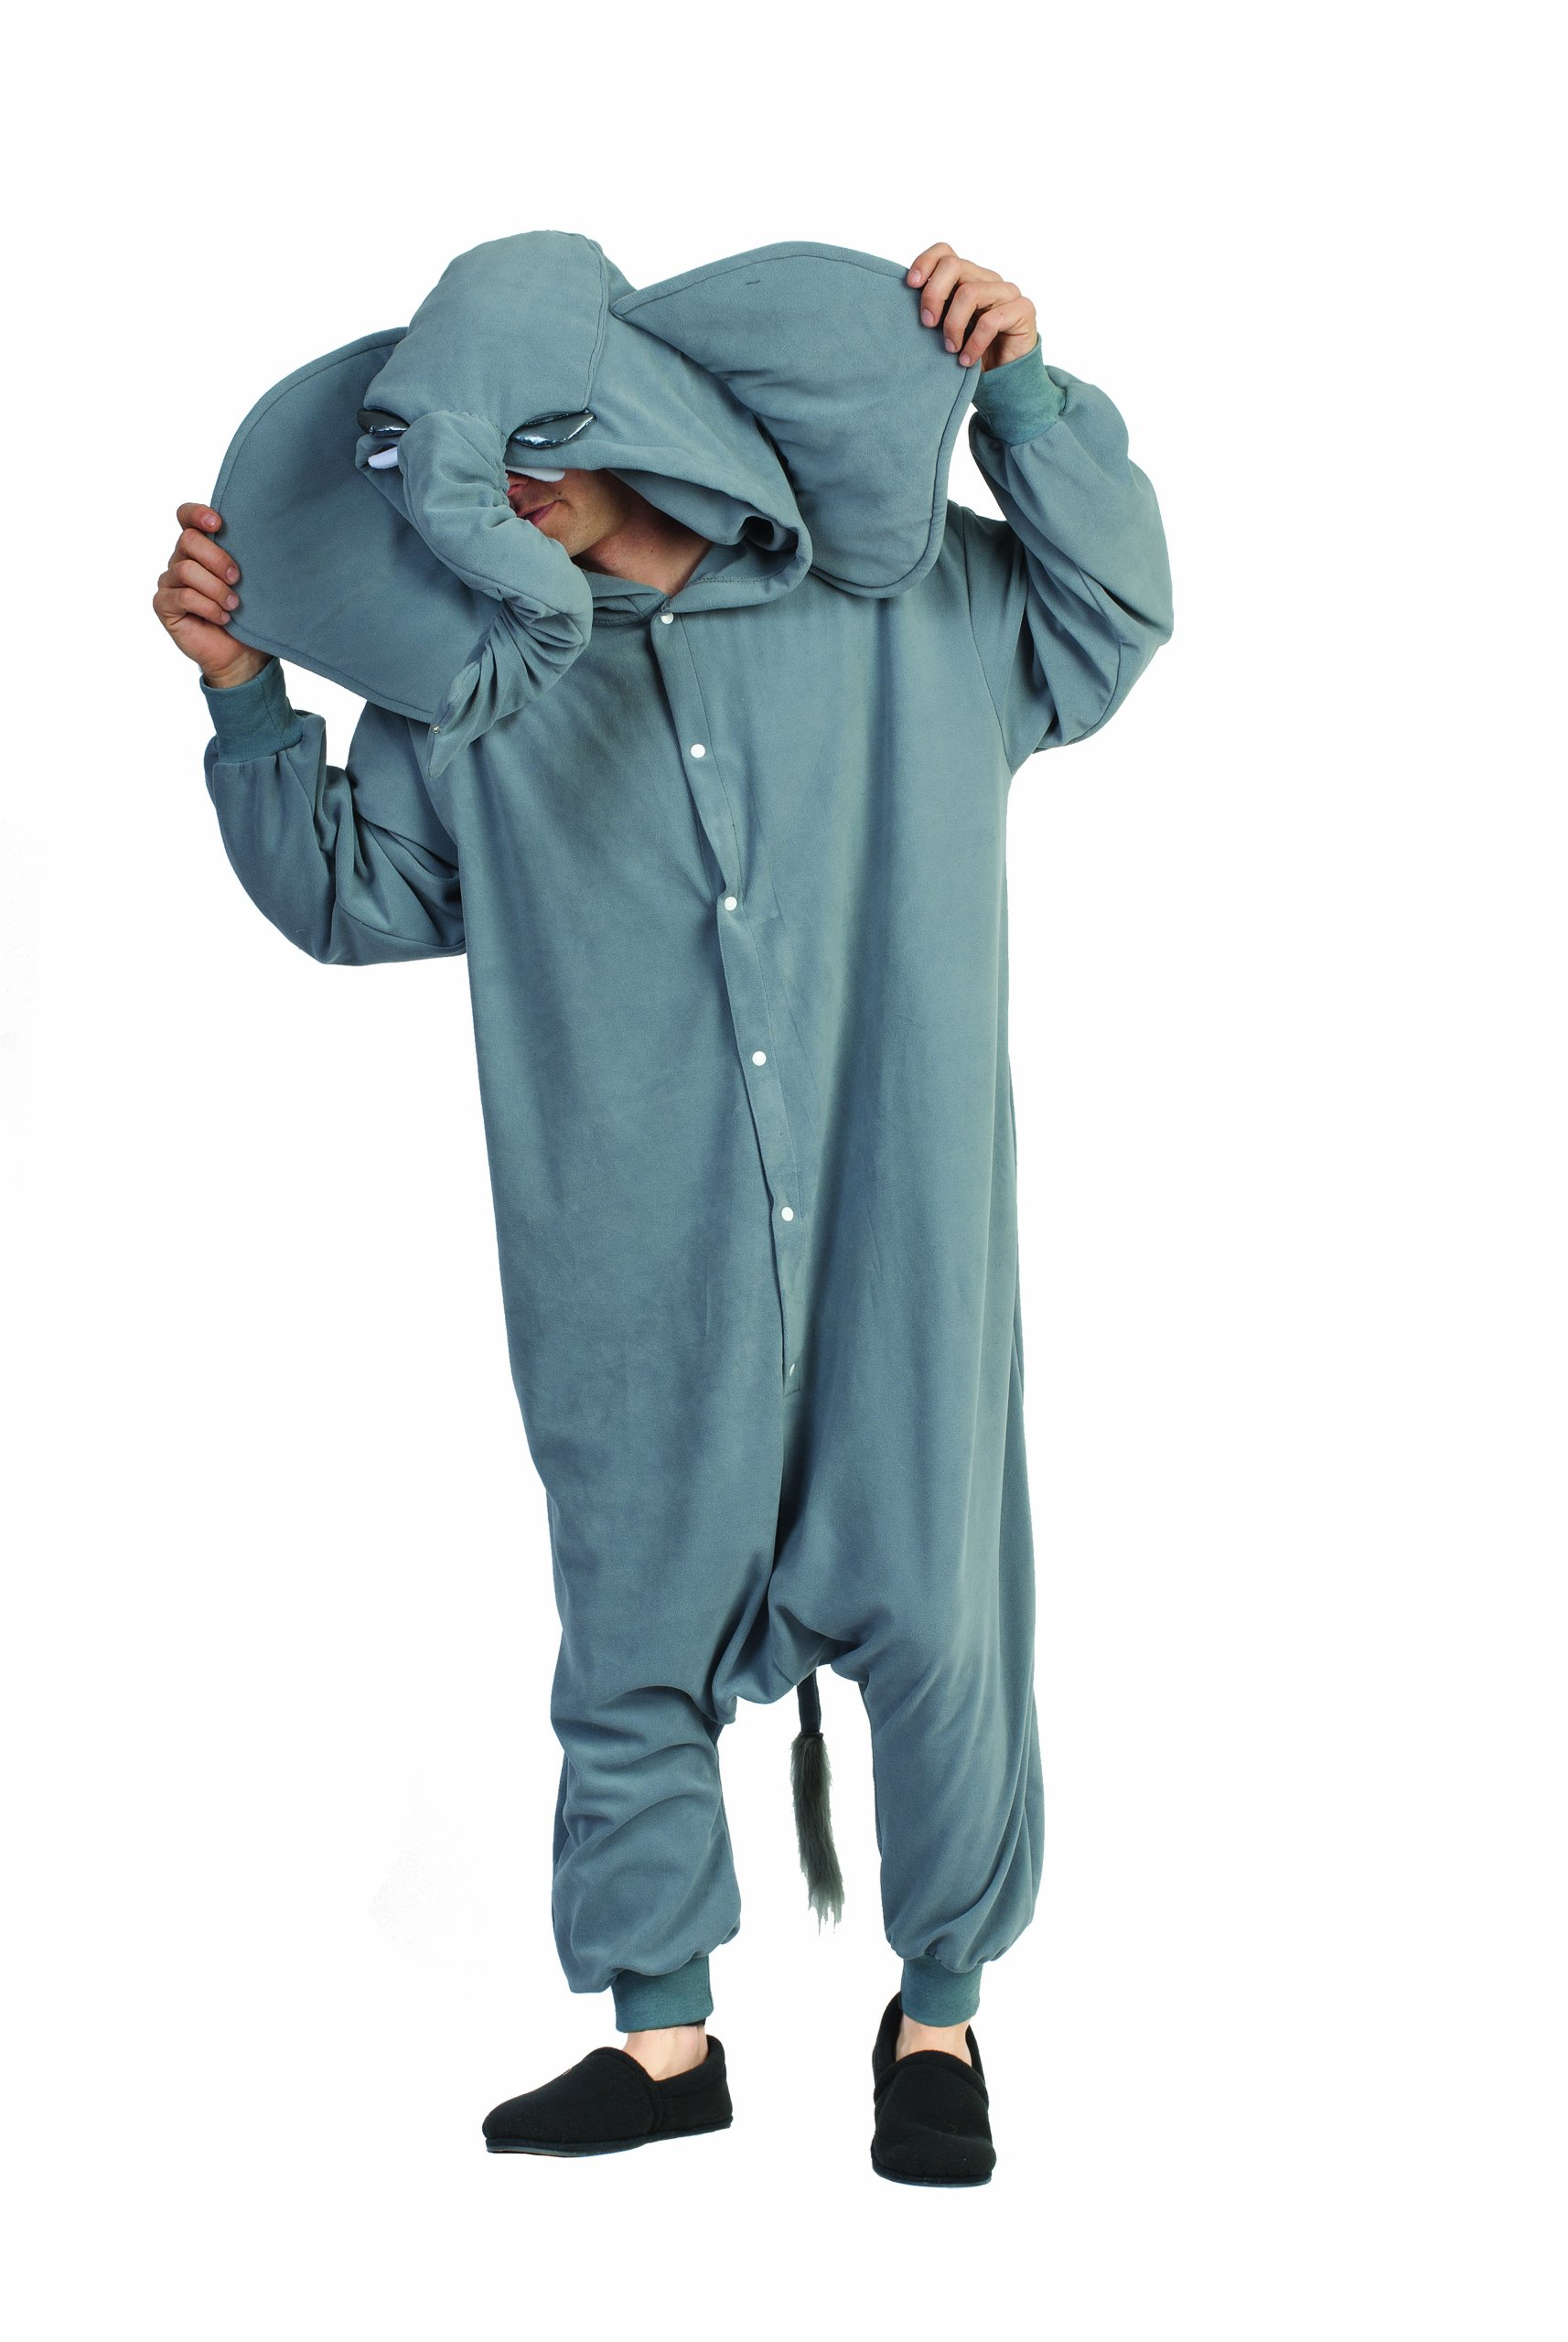 Funsies Kigurumi Peanut Elephant Fleece Jumpsuit Costume Adult